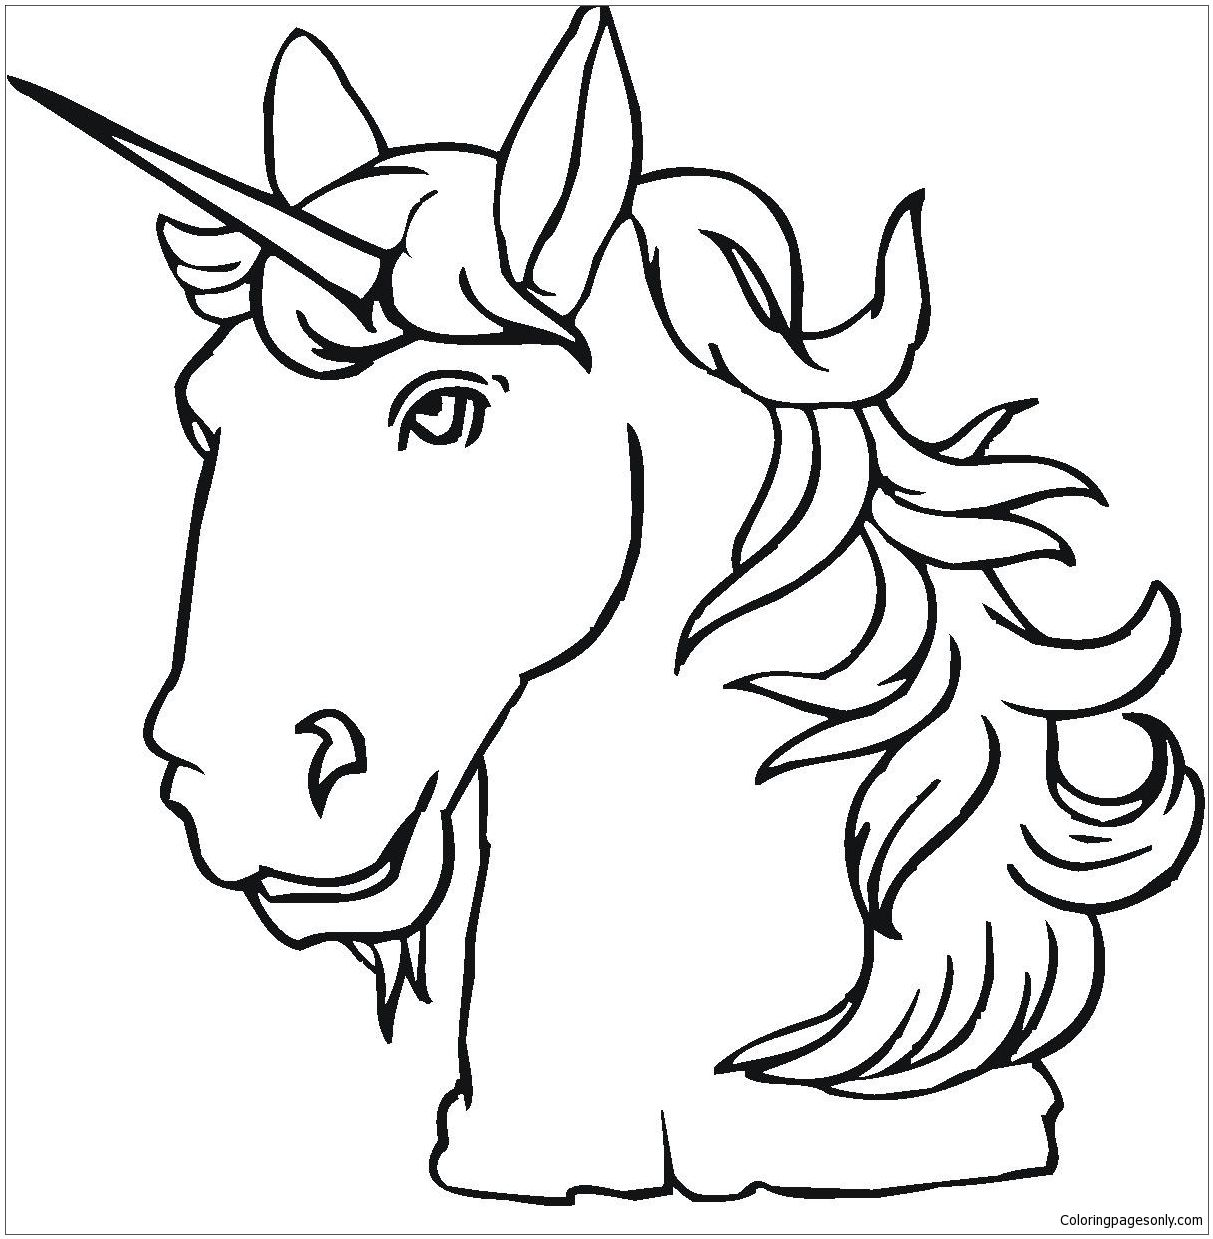 Unicorn head coloring page free coloring pages online